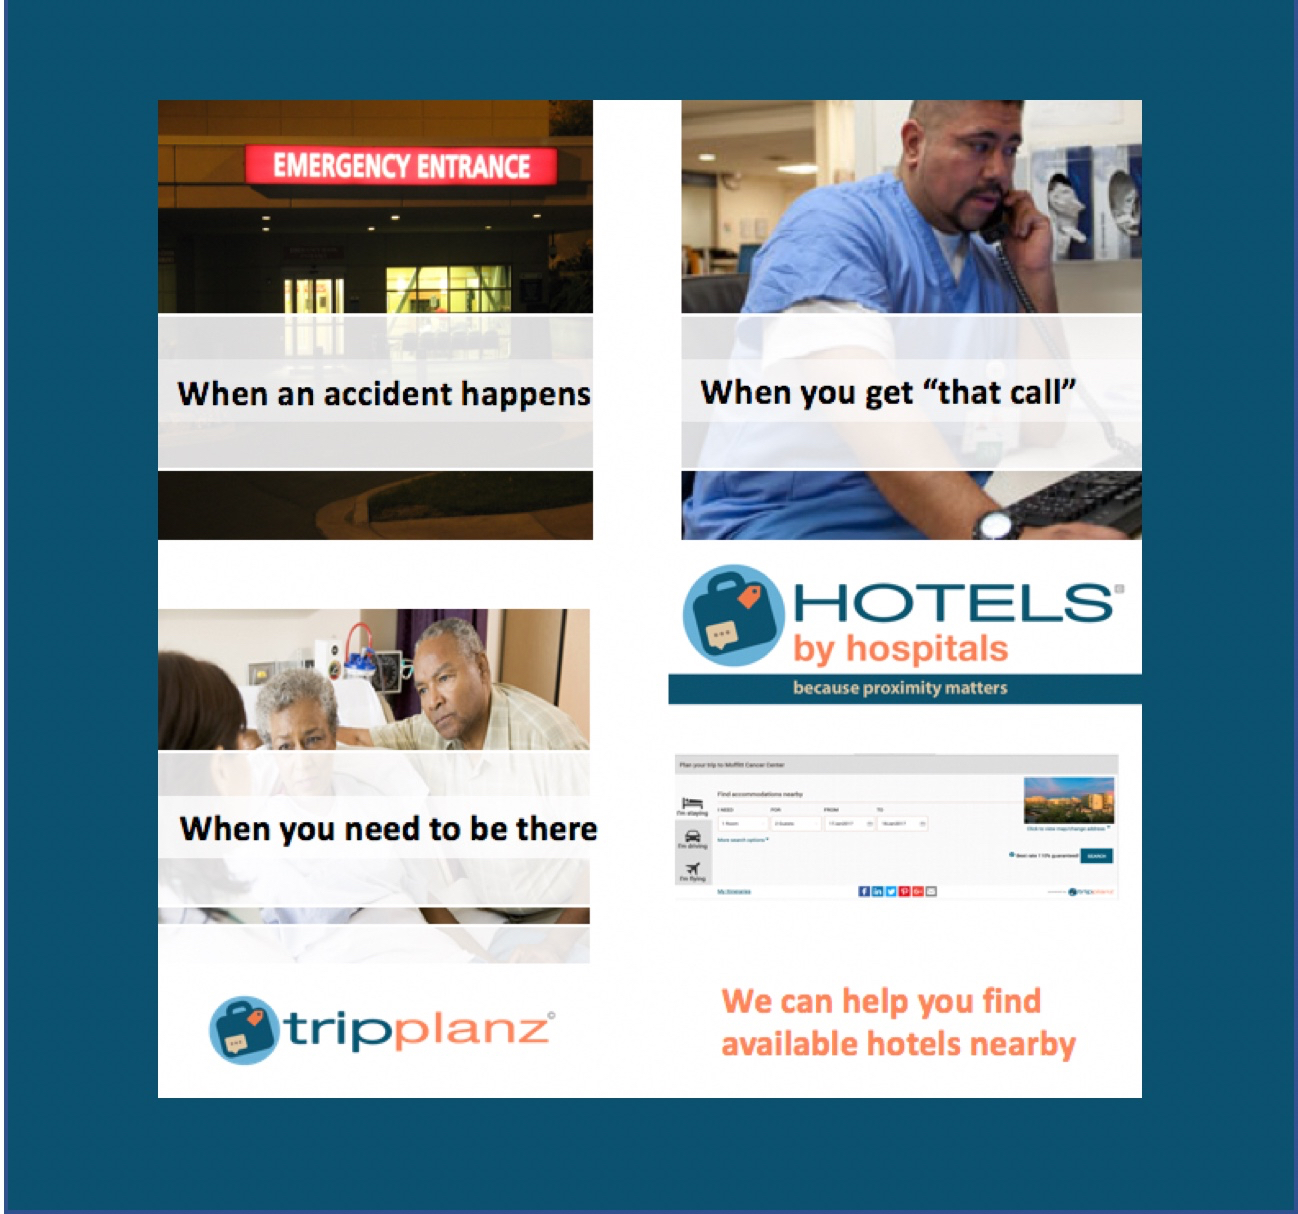 Finding hotels near care facilities